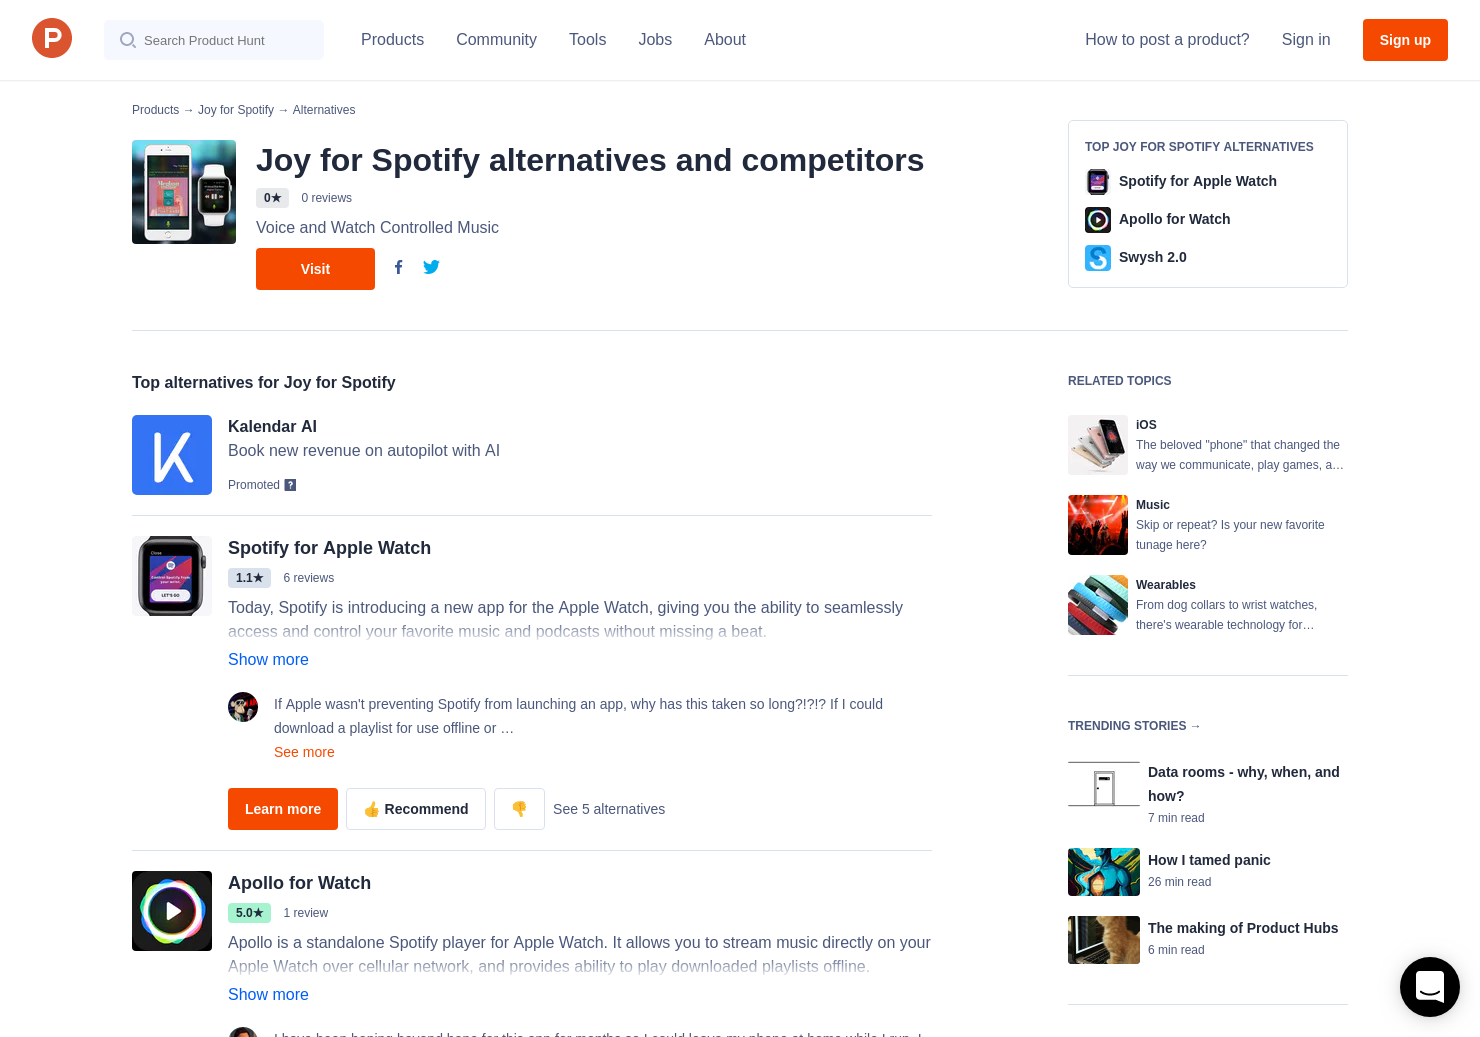 3 Alternatives to Joy for Spotify for iPhone, Apple Watch